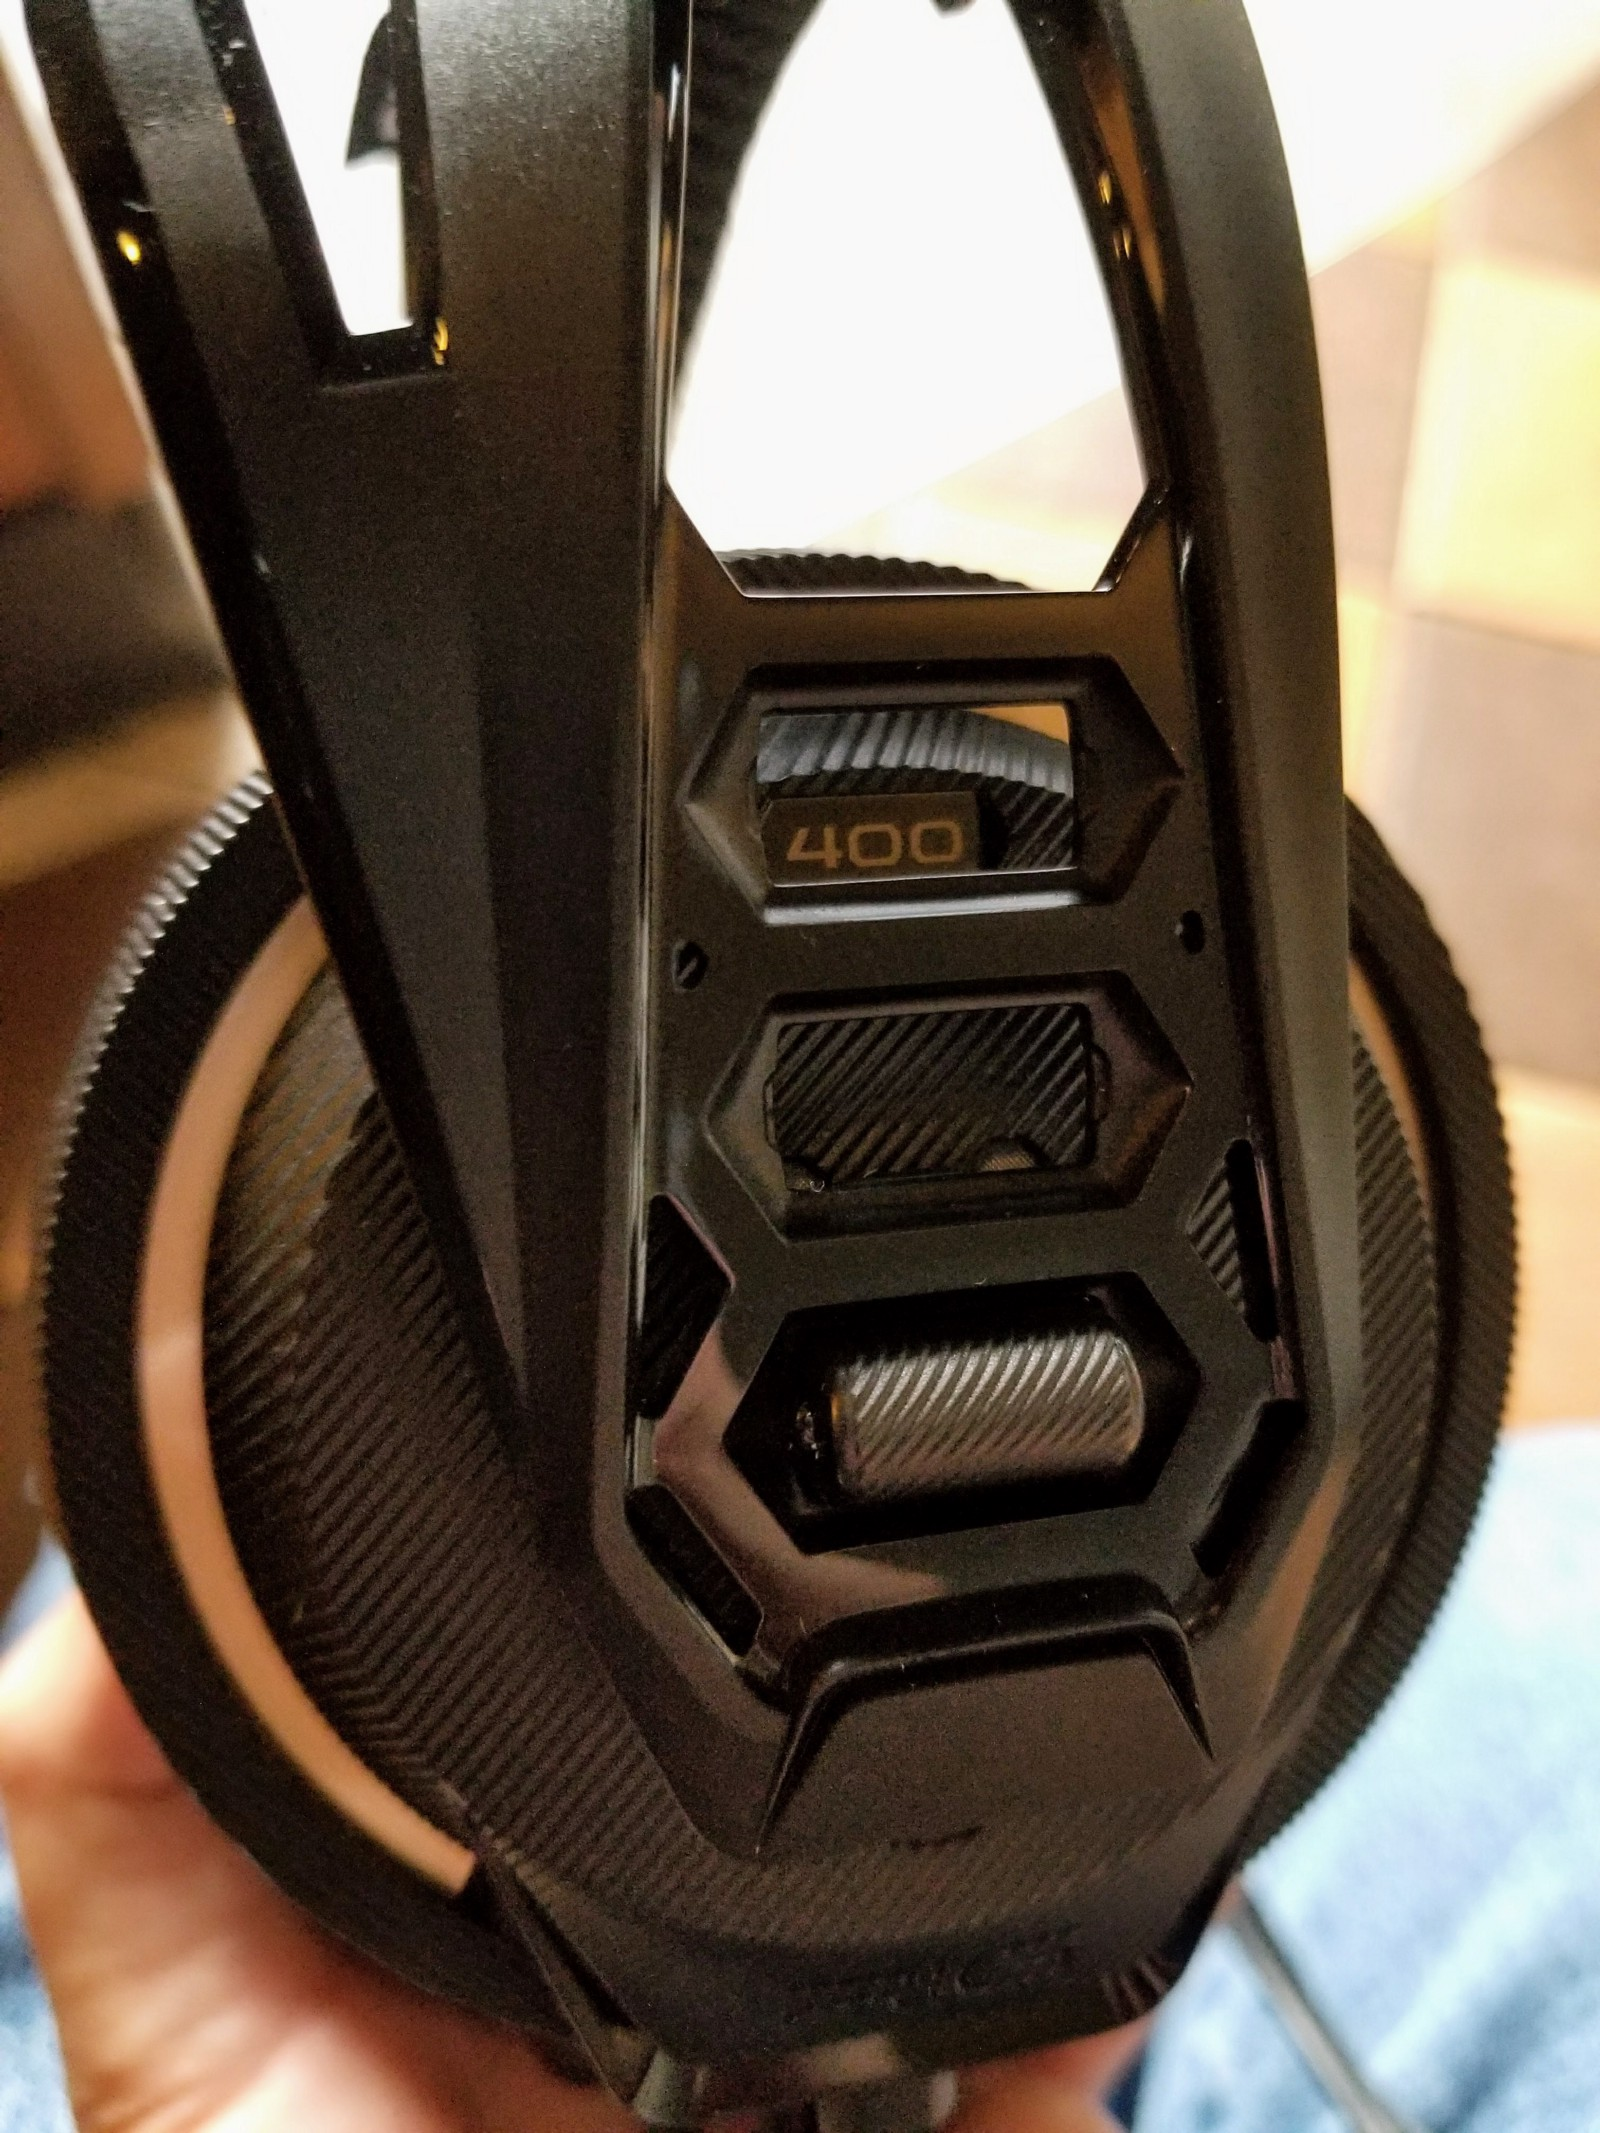 Plantronics Rig 400 Gaming Headset Review Alex Rowe Medium Stereo Headphone Jack Wiring Diagram Further Circular Wire Connector The Mic Is Removable And Pc Version Includes A Splitter Extension Cable For Use With Dual Audio Configuration